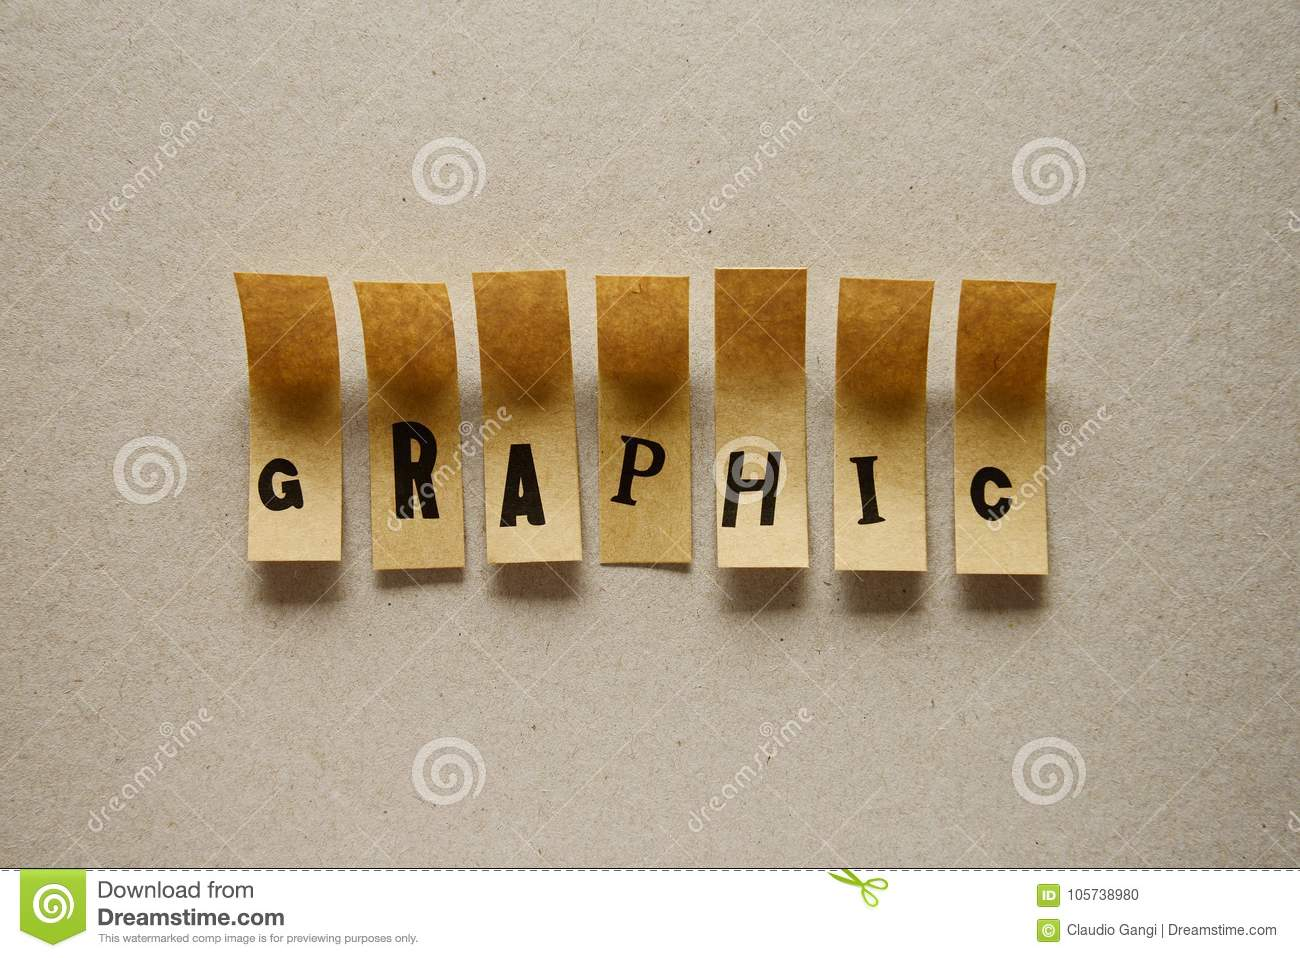 Graphic - word in sticky letters